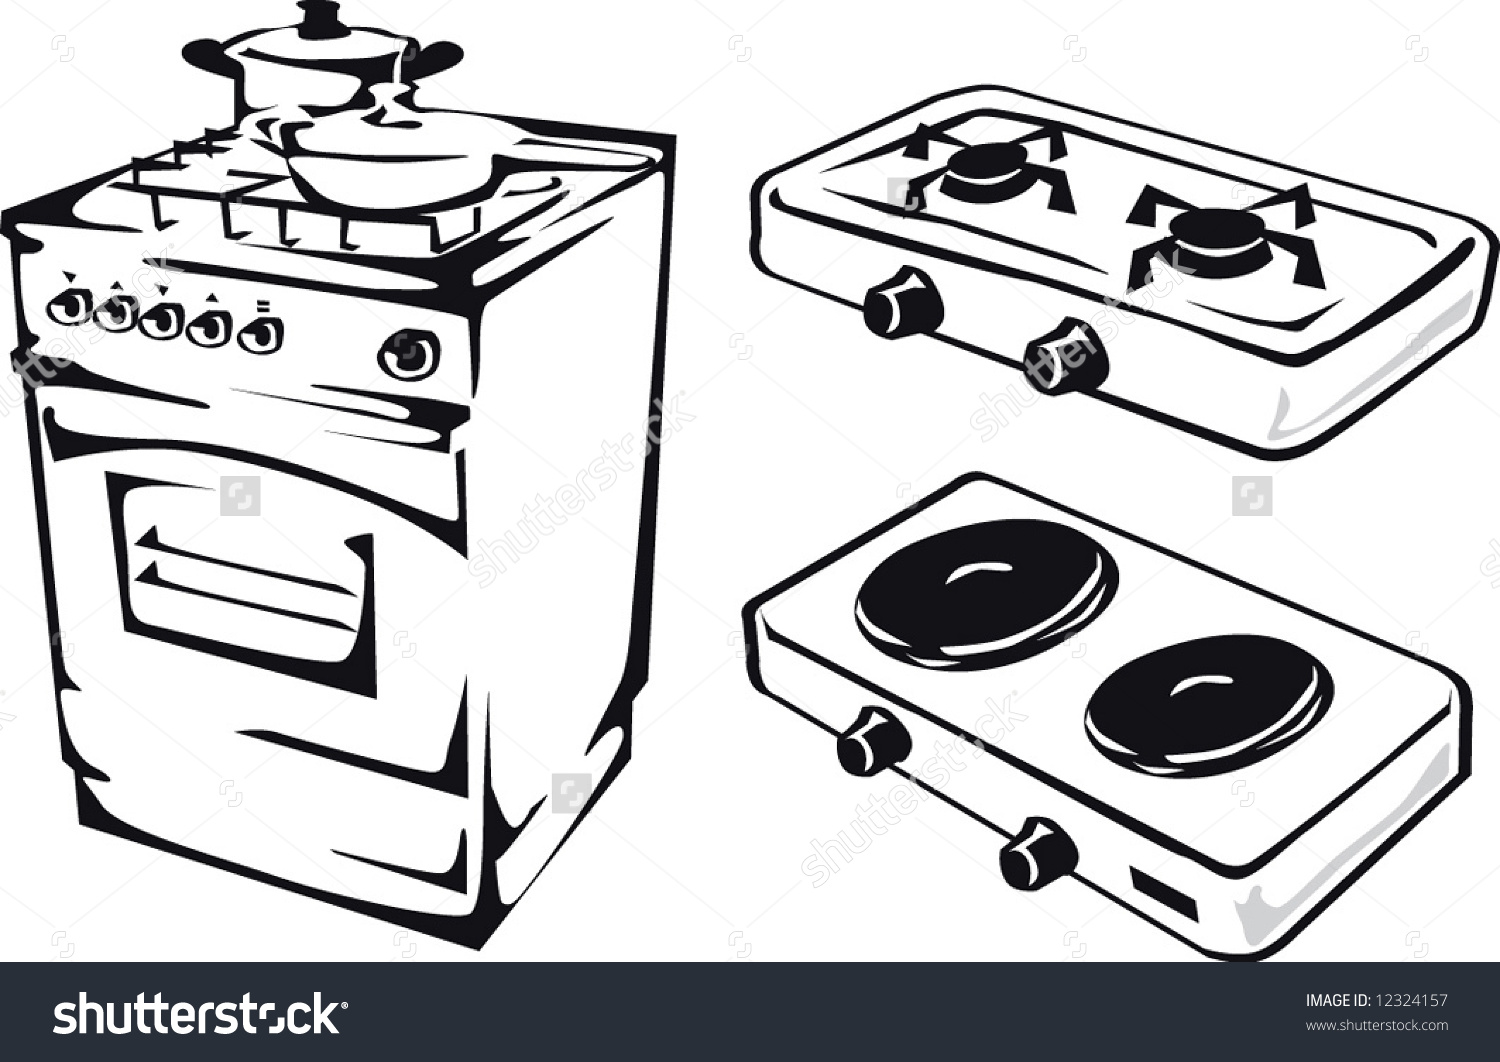 Gas stove clipart 5 » Clipart Station.